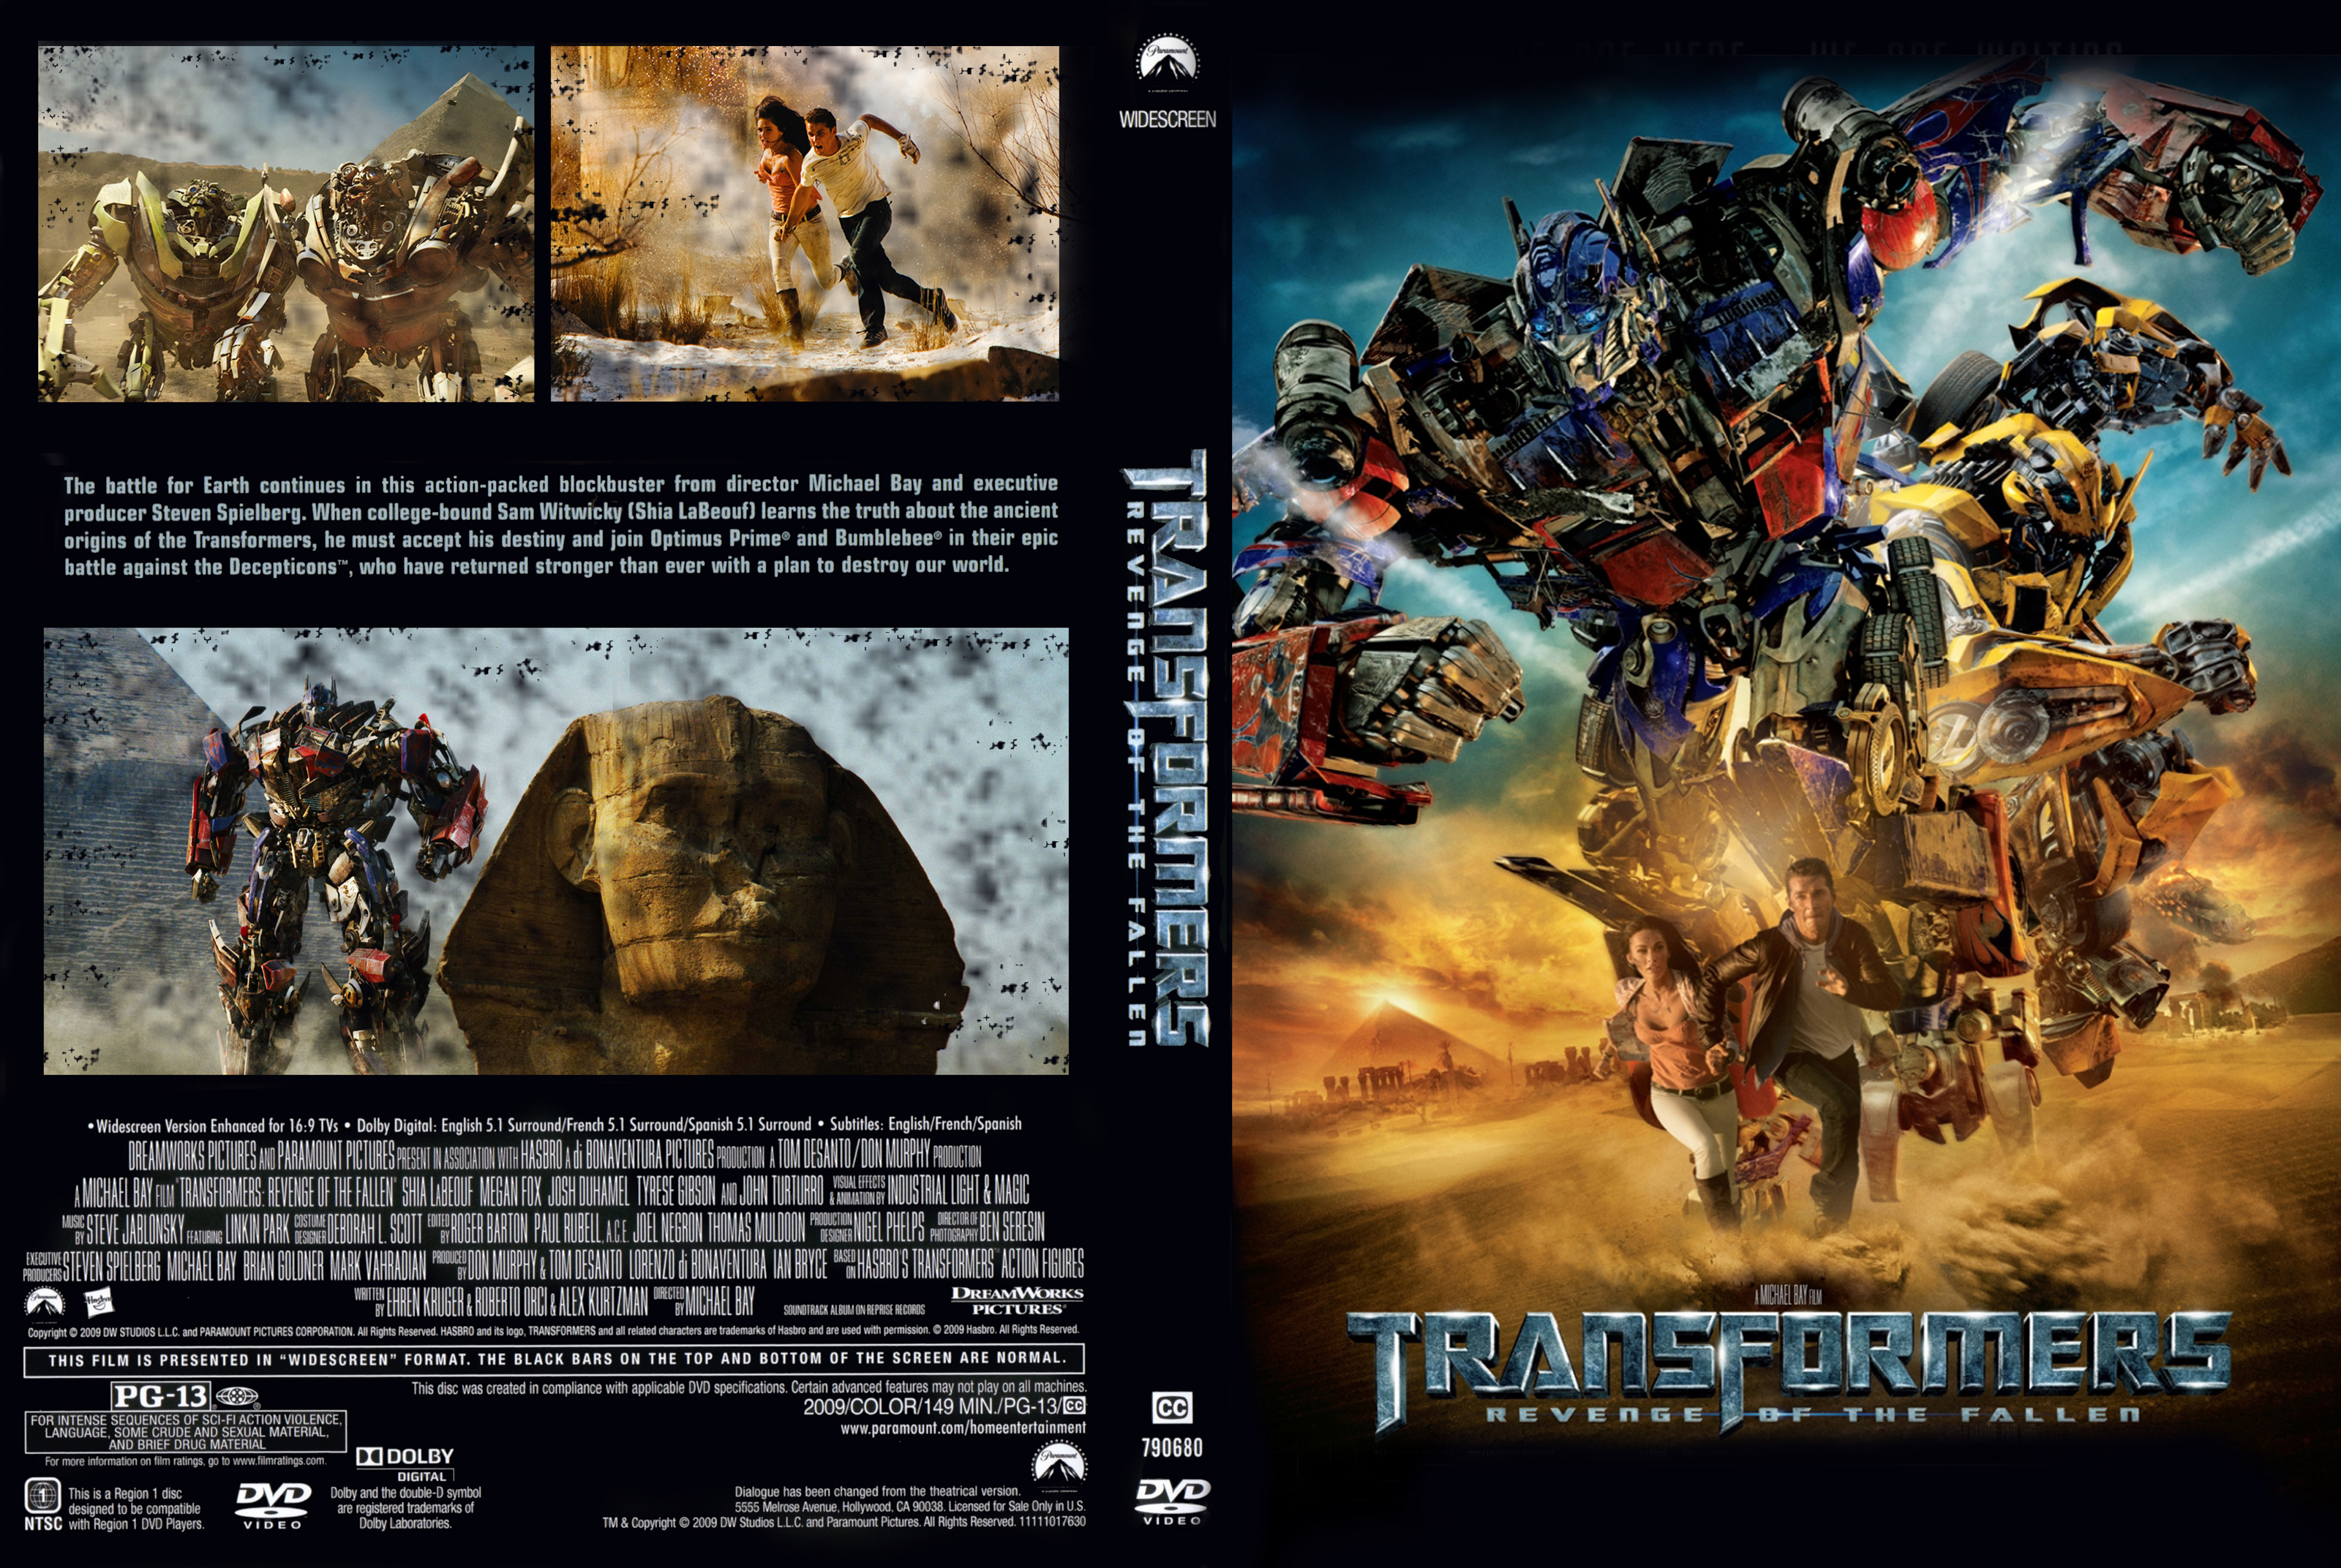 Covers Box Sk Transformers Revenge Of The Fallen 2009 High Quality Dvd Blueray Movie